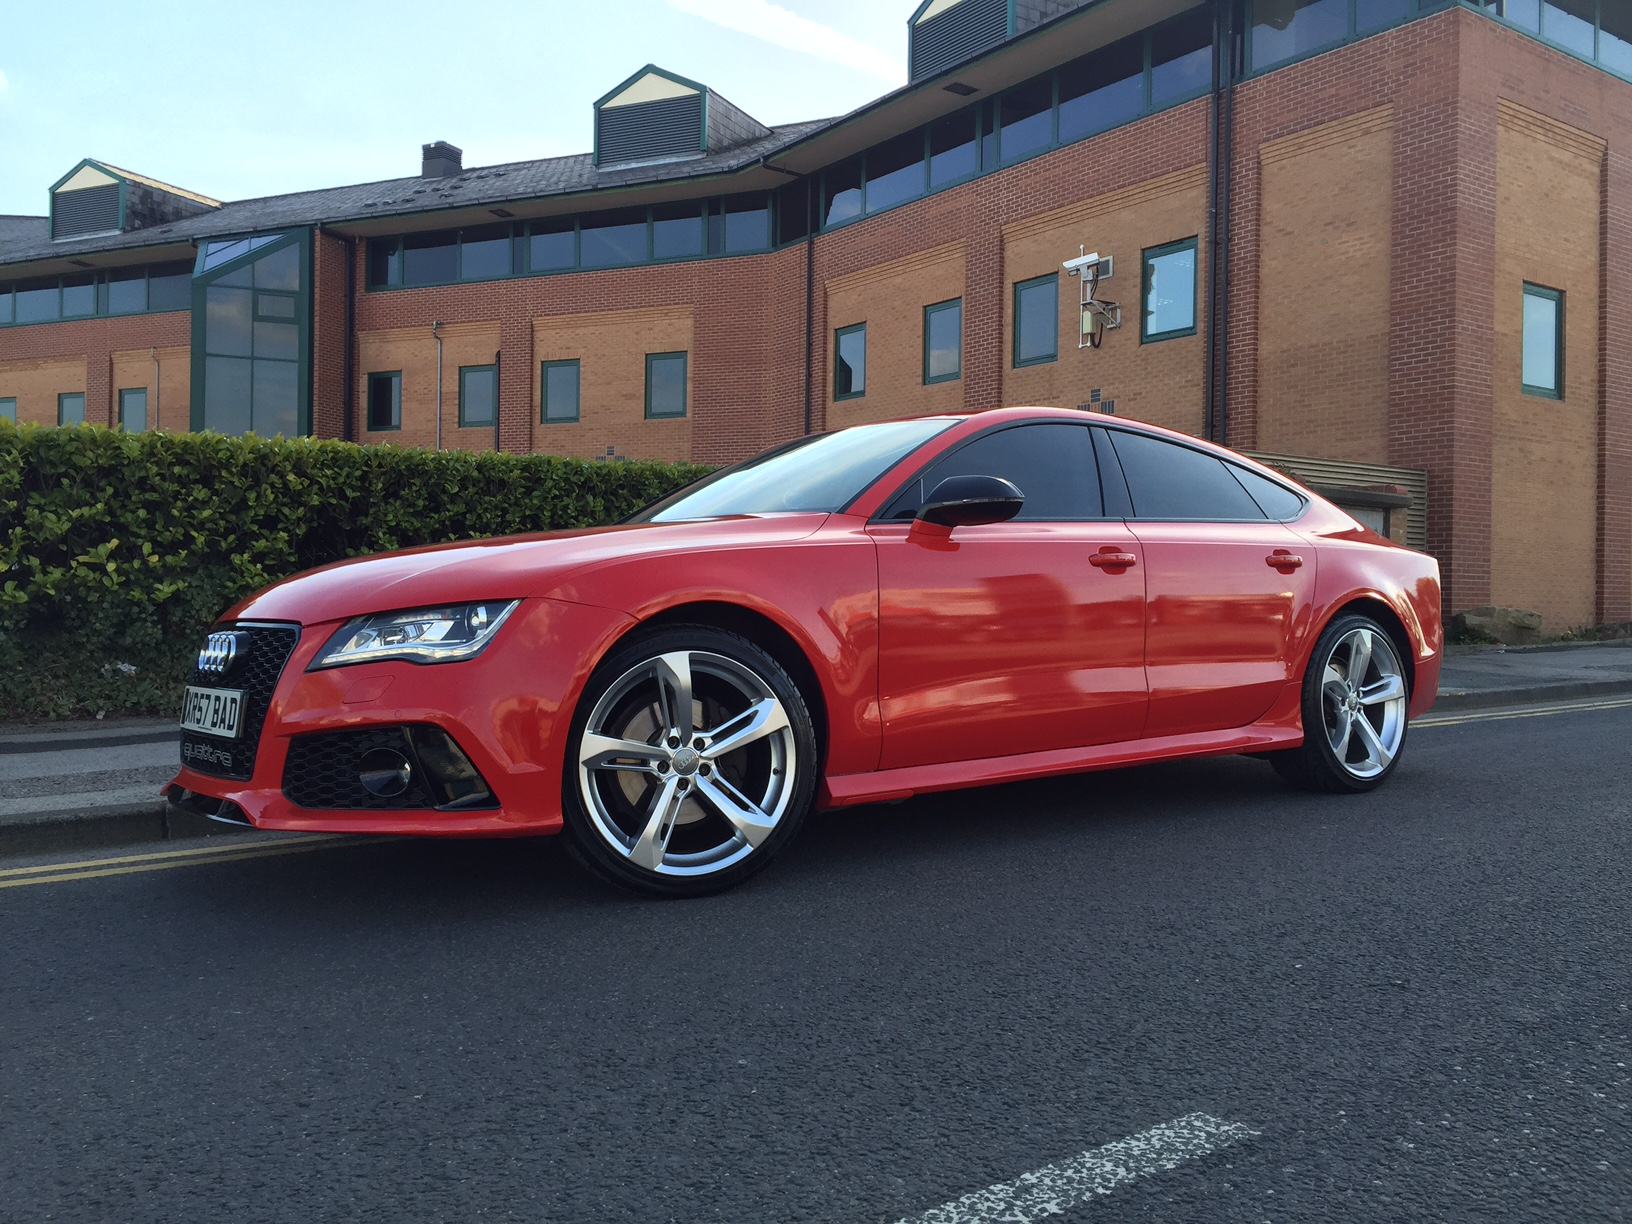 Audi A7 2010 2014 Rs7 Conversion Recreation Replica Styling Upgrade